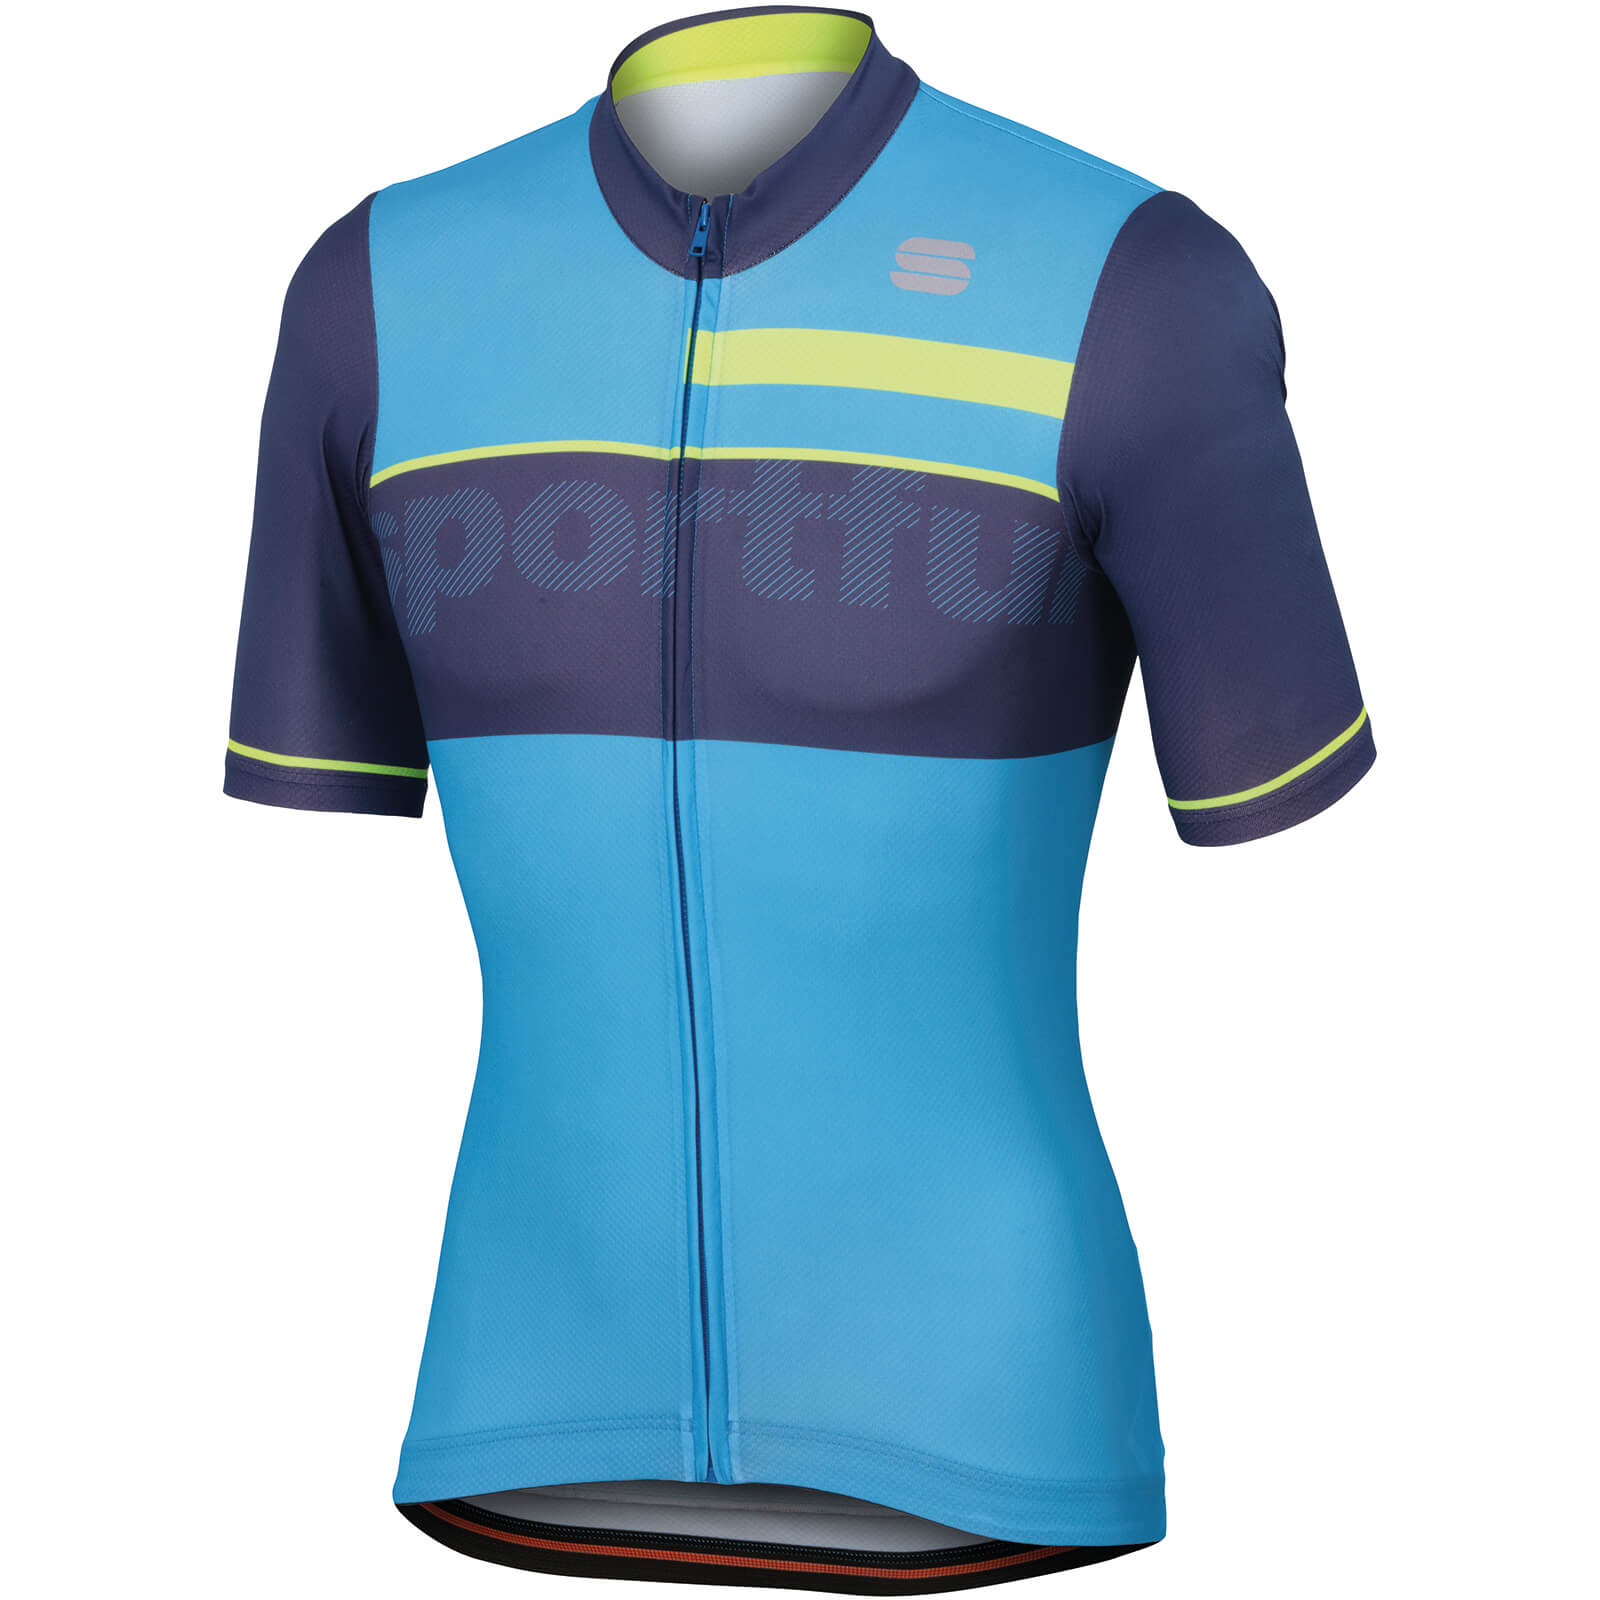 Sportful Squadra Corse Jersey - Electric Blue/Twilight Blue/Yellow Fluo